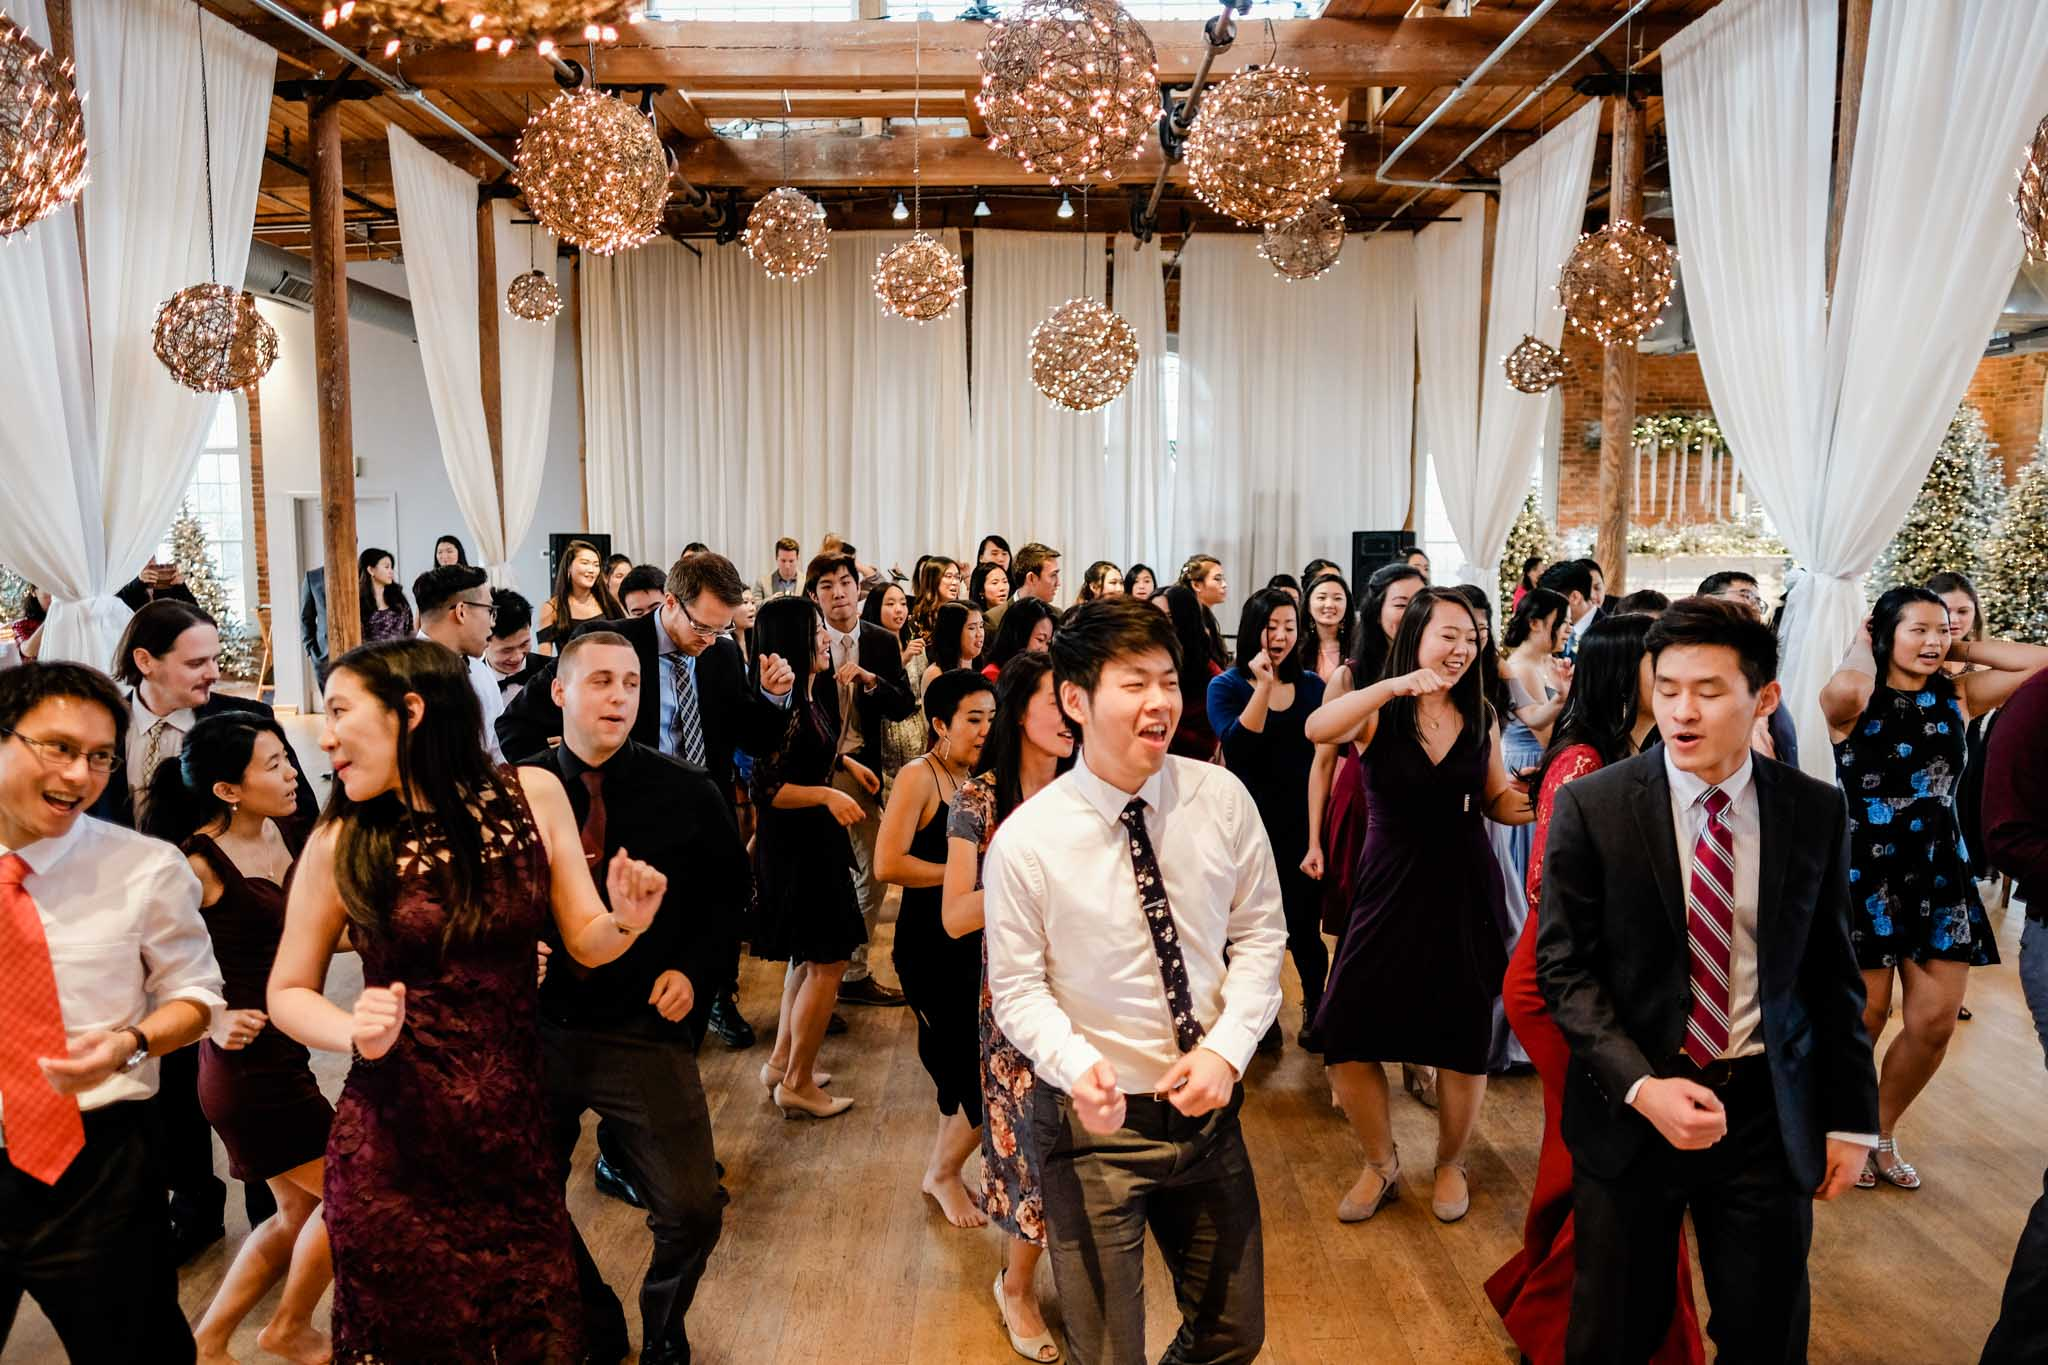 Dancing during wedding reception at The Cotton Room | Durham Event Photographer | By G. Lin Photography